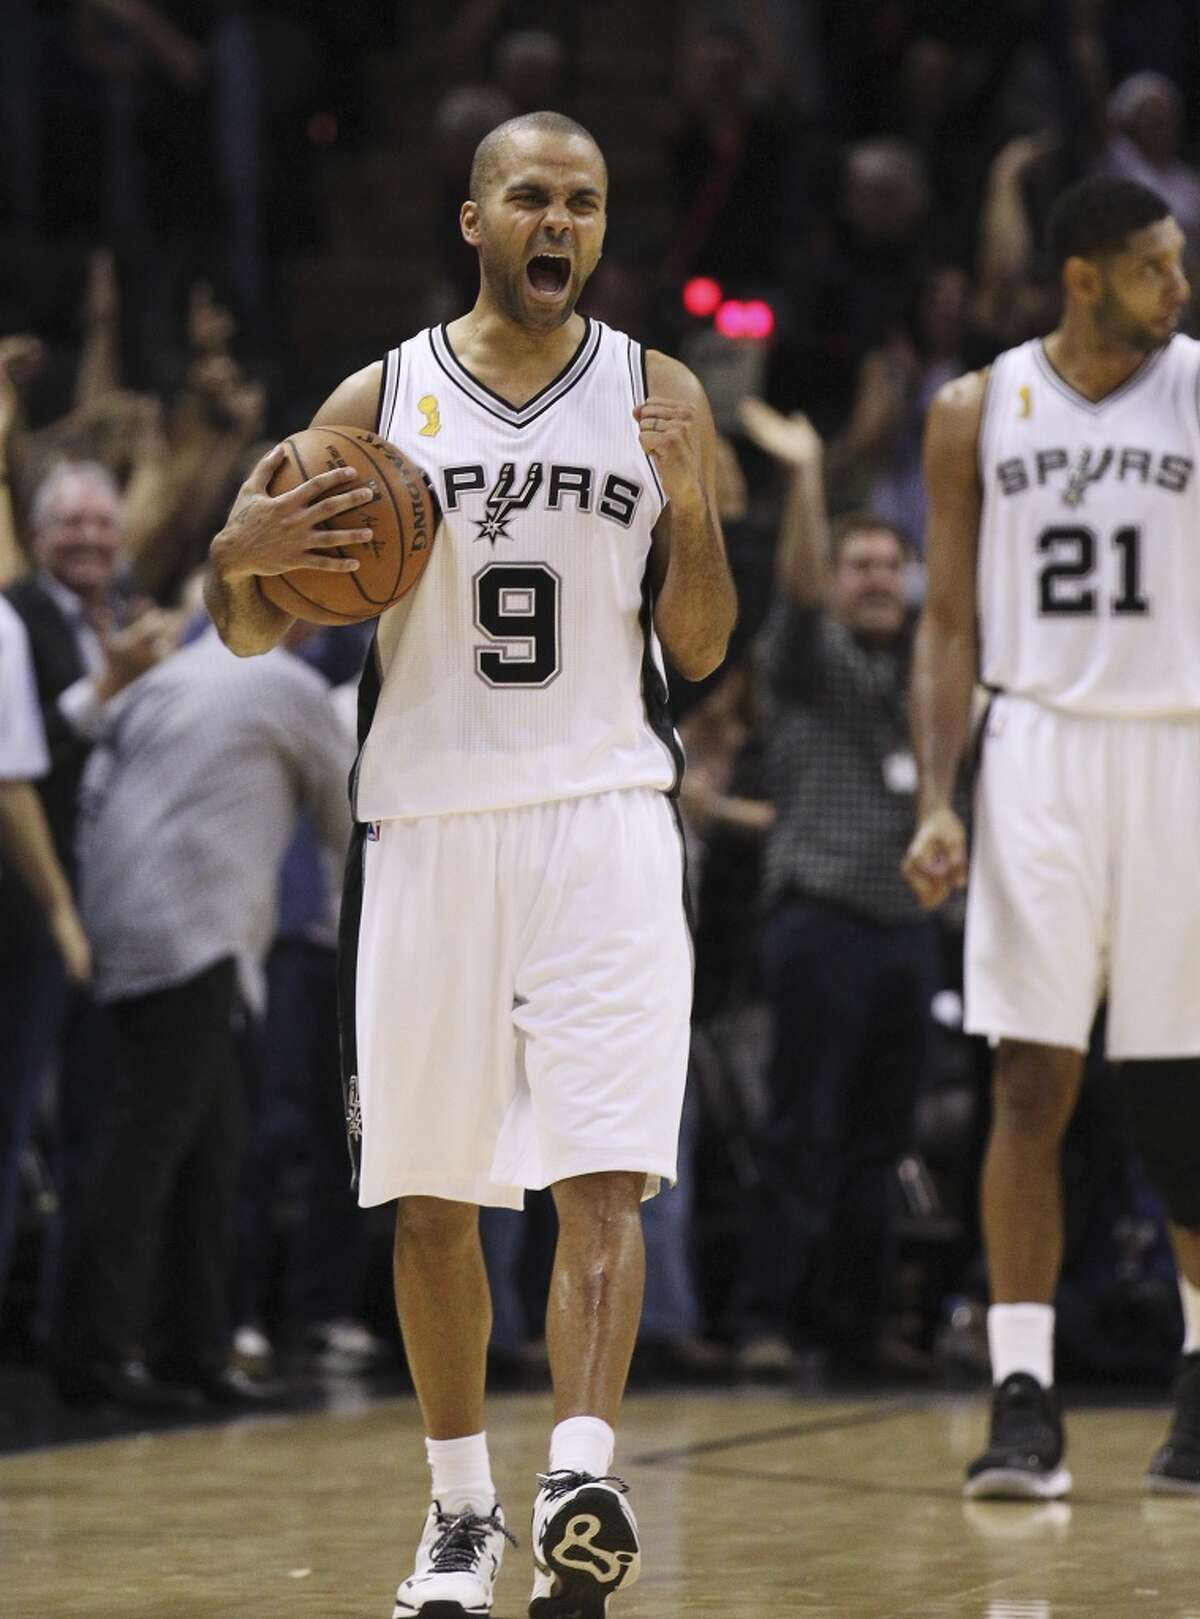 Spurs' Tony Parker (09) reacts as time runs out in the season opener against the Dallas Mavericks at the AT&T Center on Tuesday, Oct. 28, 2014. Spurs defeat the Mavericks, 101-100. (Kin Man Hui/San Antonio Express-News)